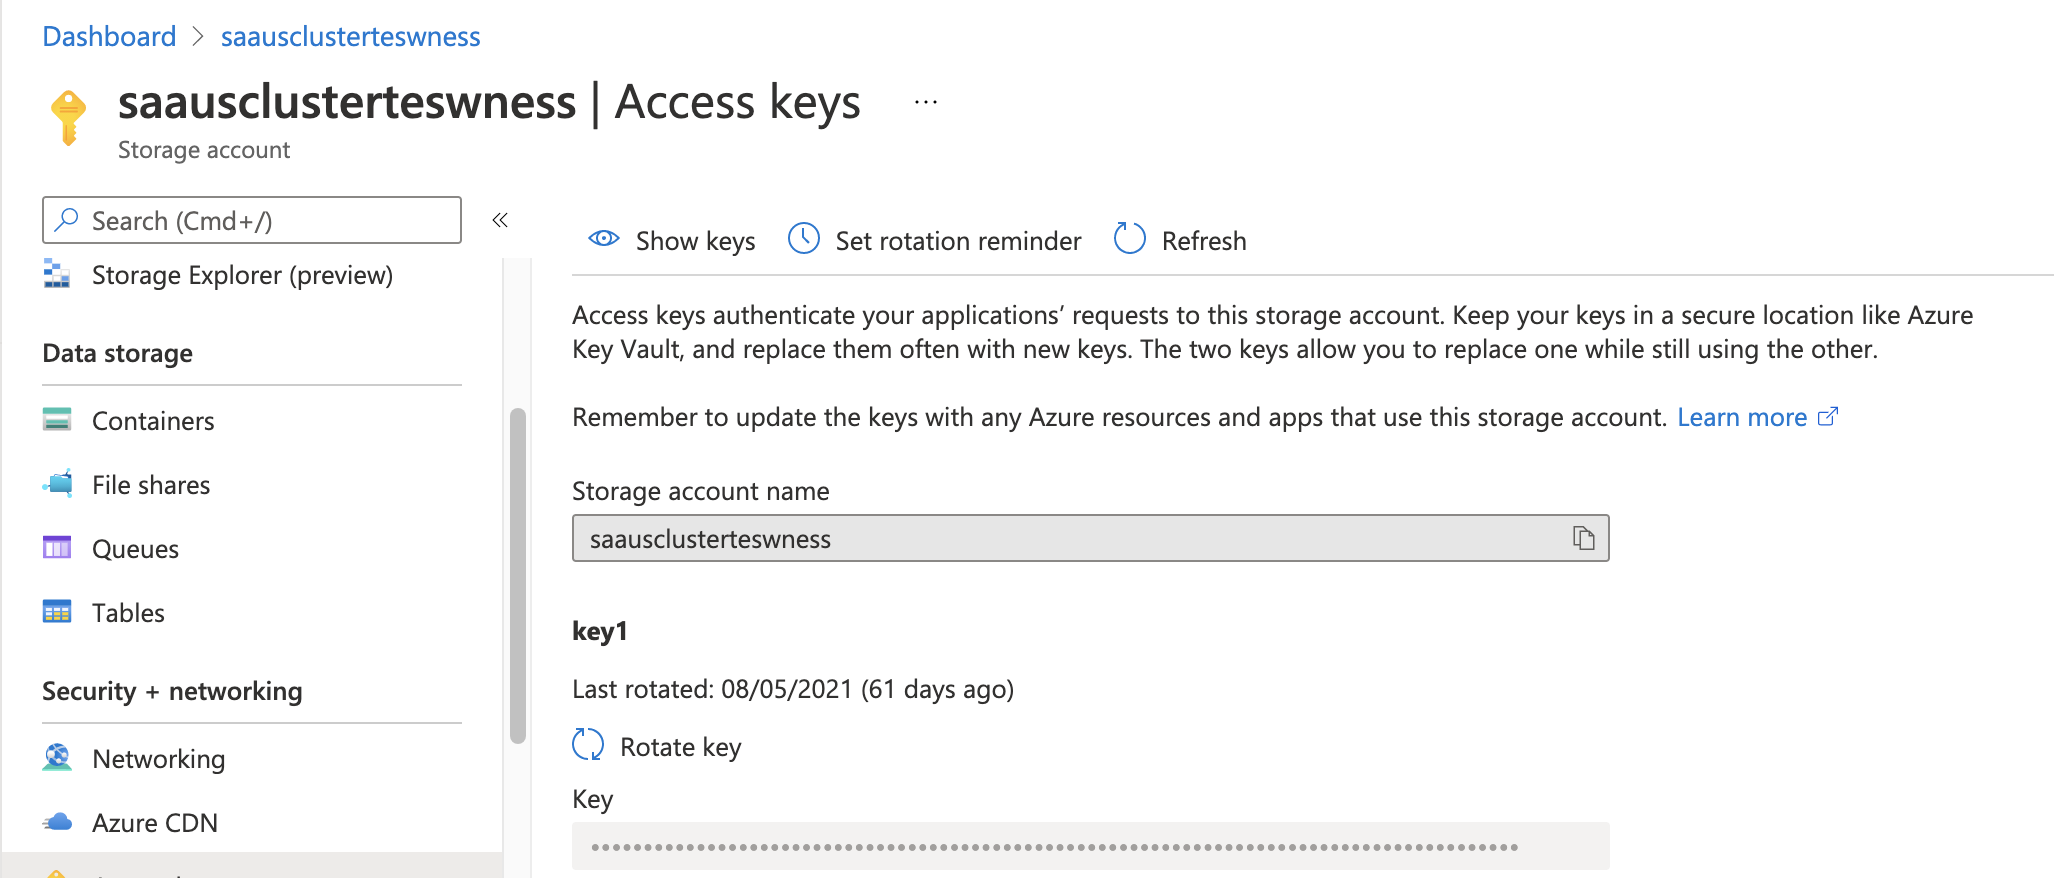 Take note of the access key and name for the storage account